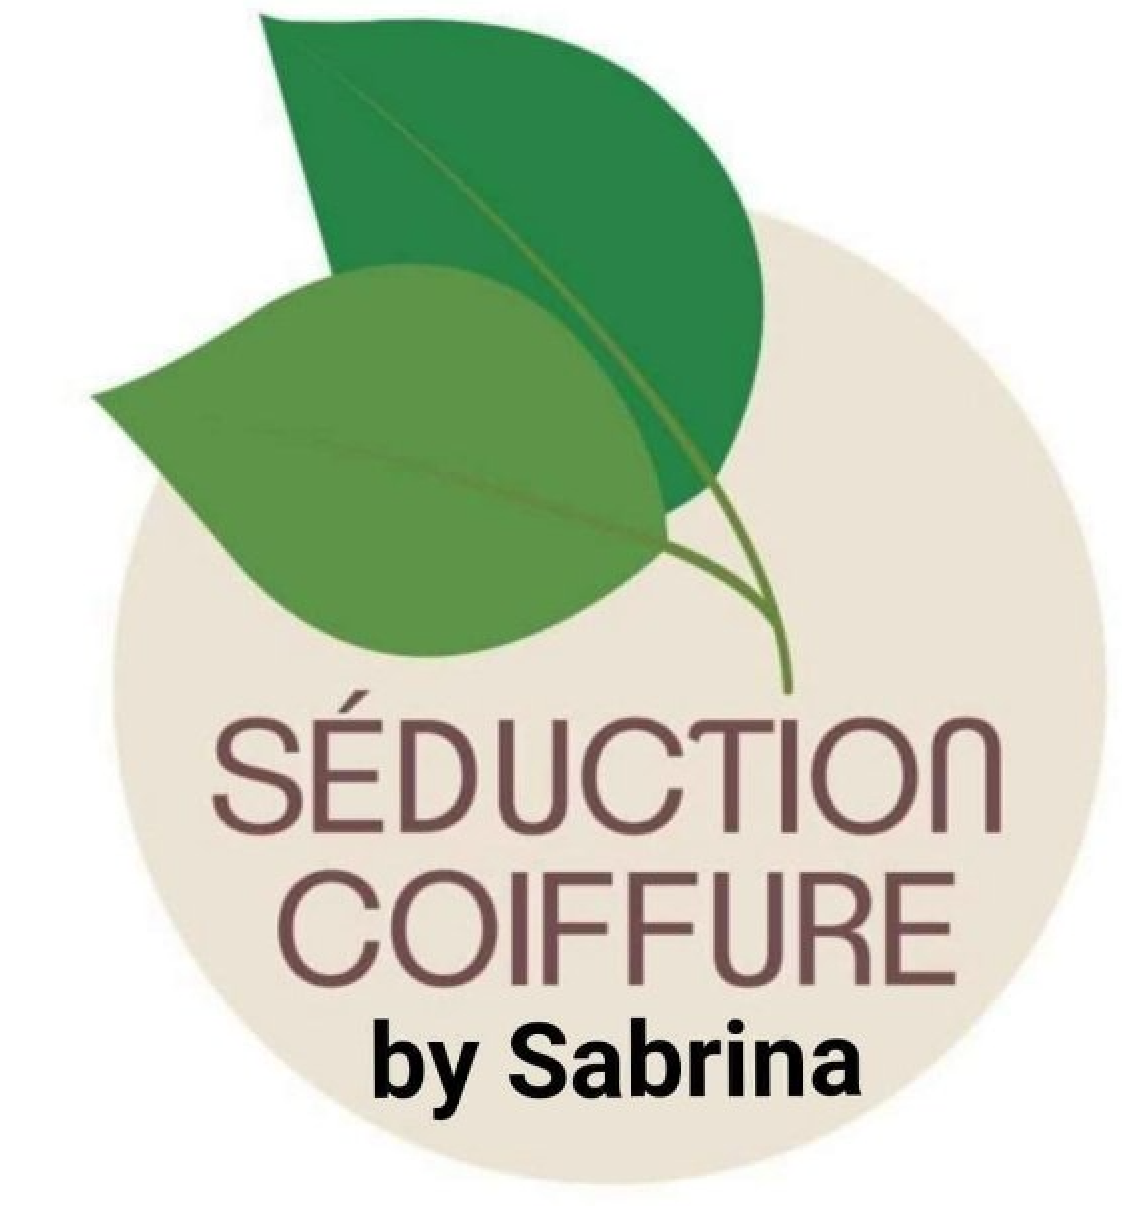 Séduction coiffure by Sabrina